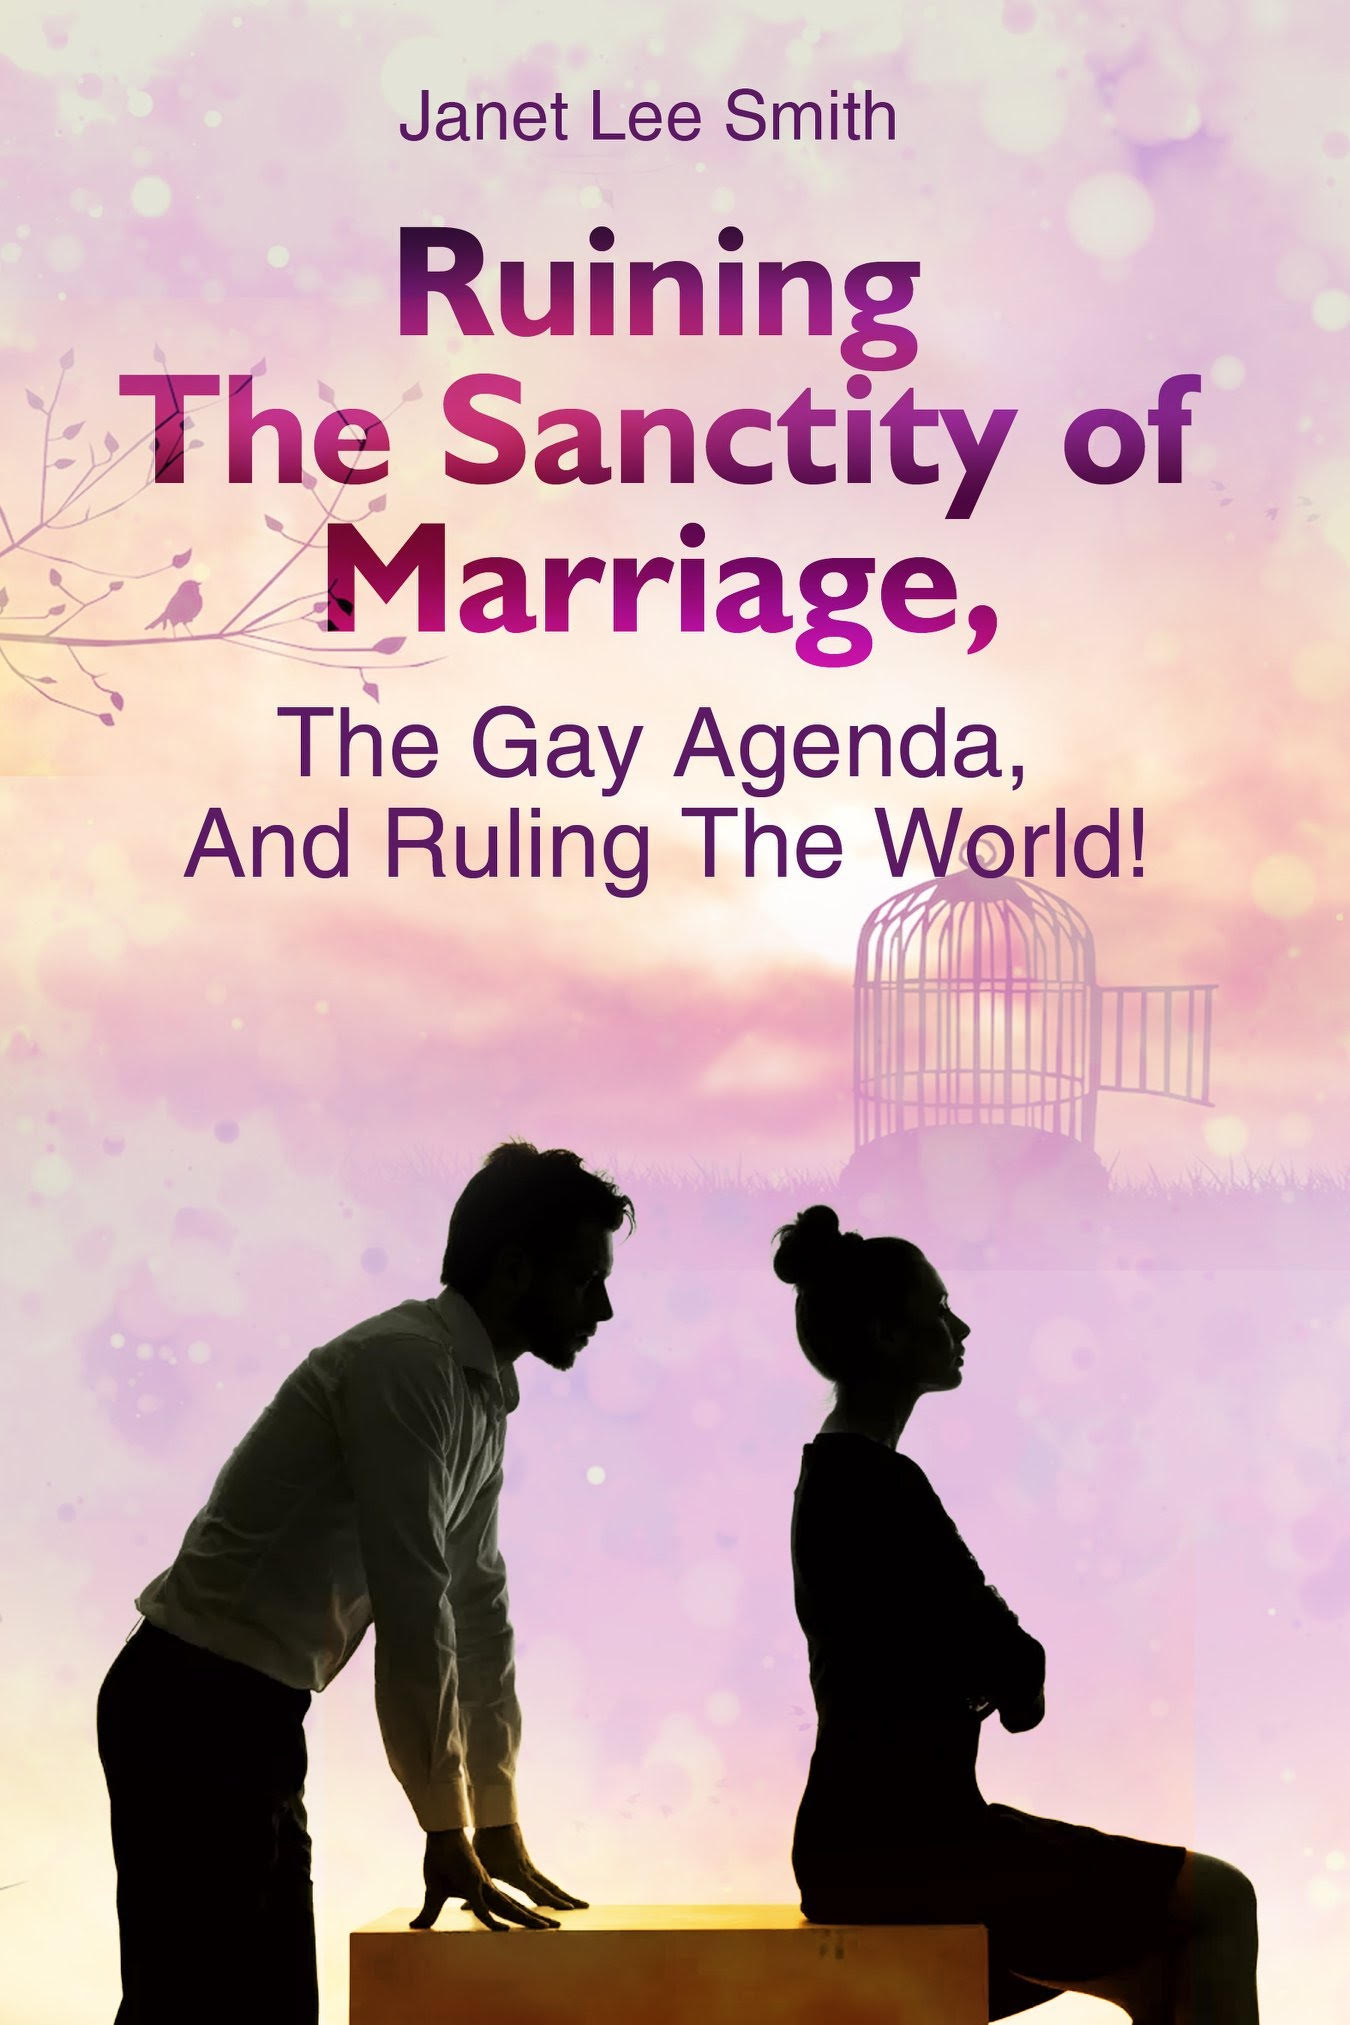 Ruining The Sanctity of Marriage, The Gay Agenda, And Ruling The World! by Janet Lee Smith